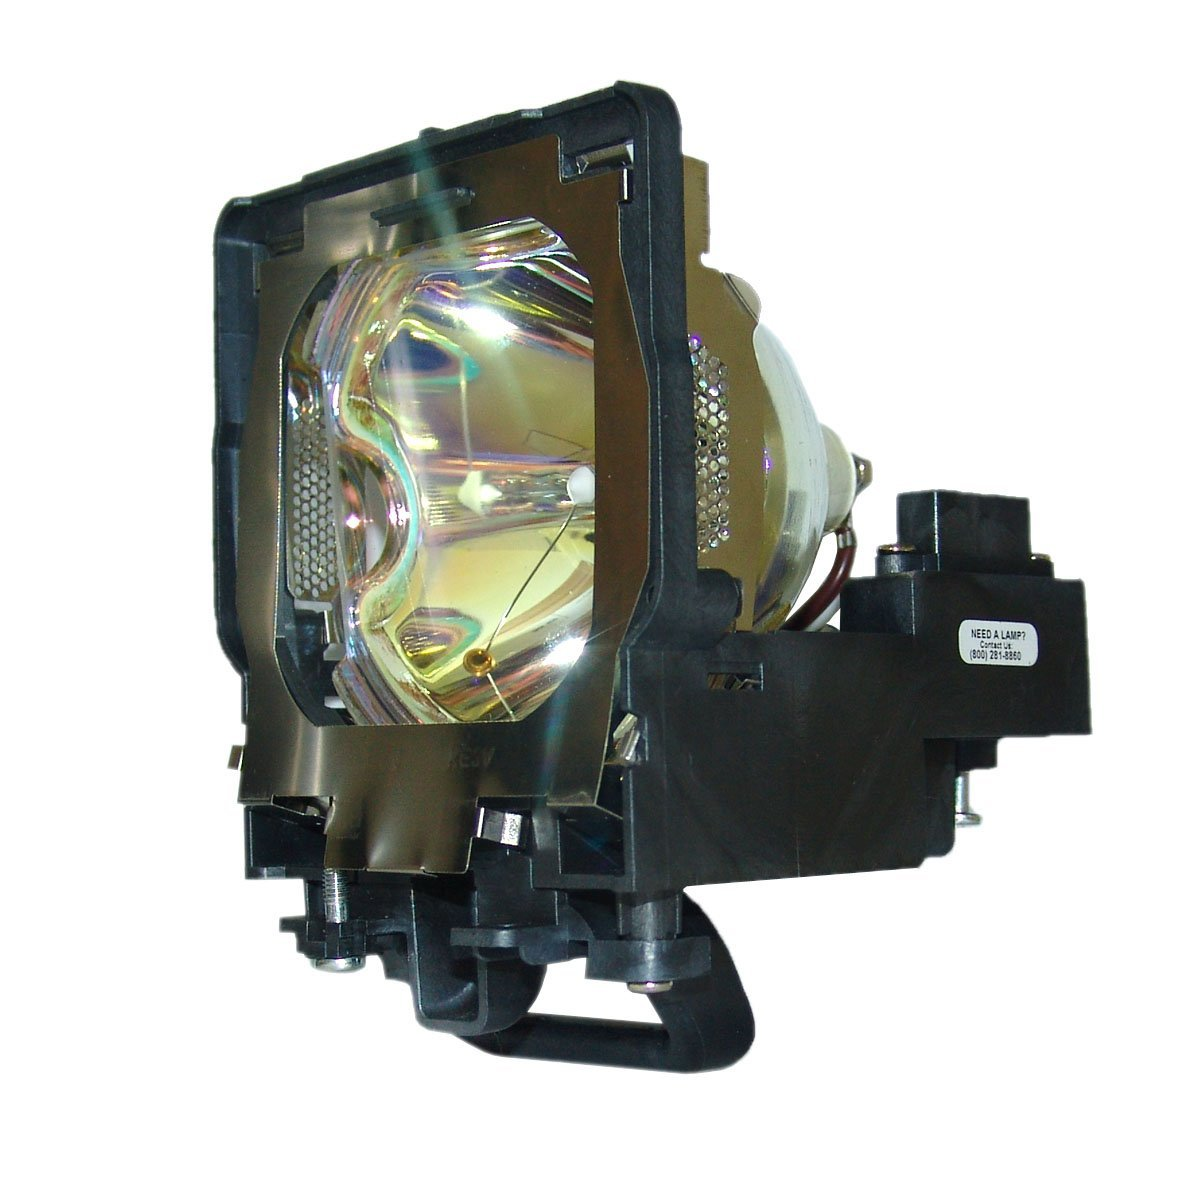 Projector Lamp Bulb POA-LMP109 LMP109 610-334-6267 for SANYO PLC-XF47 PLC-XF47W LC-XT5 LX1500 with housing compatible projector lamp bulbs poa lmp136 for sanyo plc xm150 plc wm5500 plc zm5000l plc xm150l